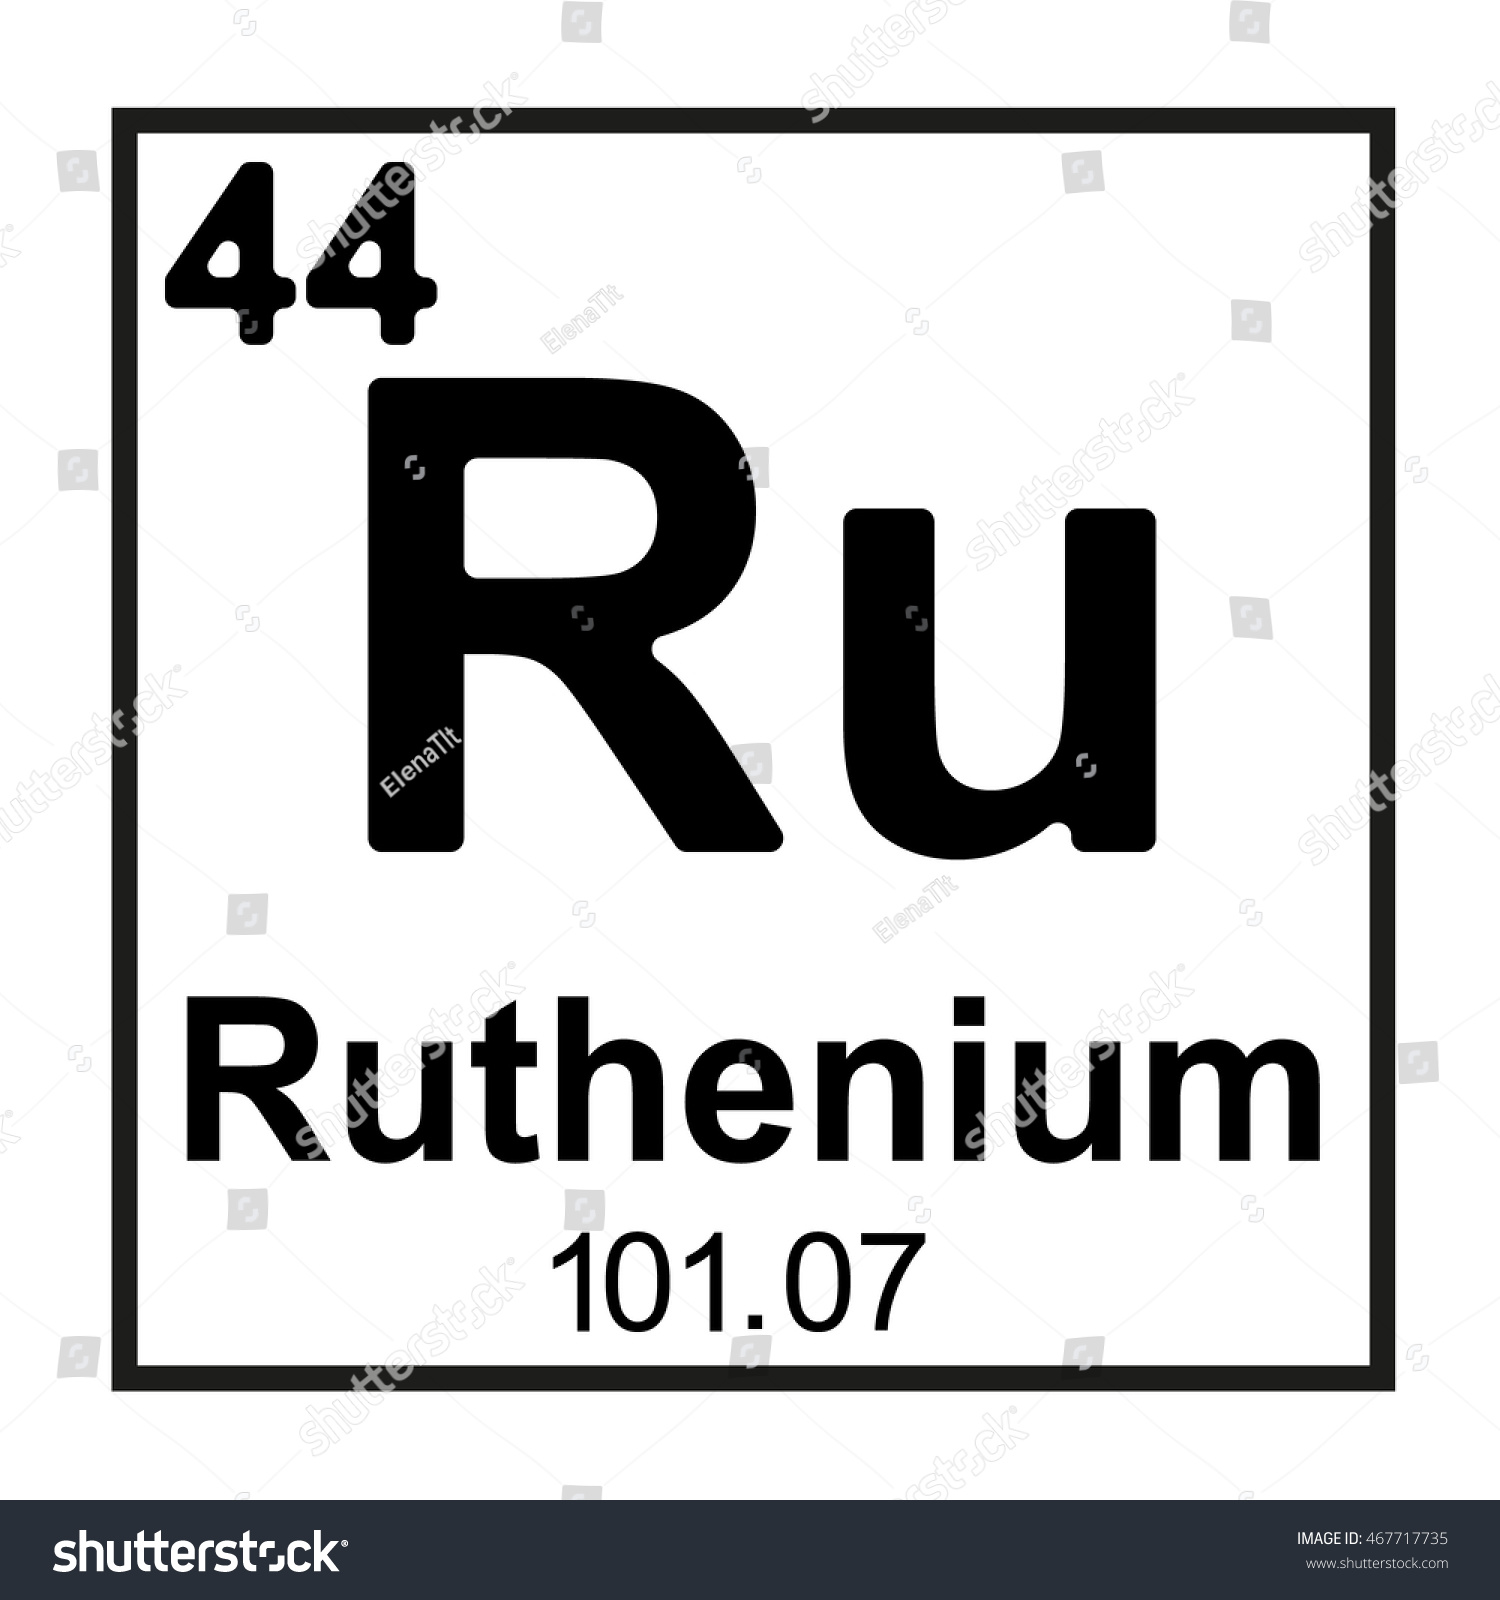 Periodic table element ruthenium stock vector 467717735 shutterstock periodic table element ruthenium gamestrikefo Choice Image